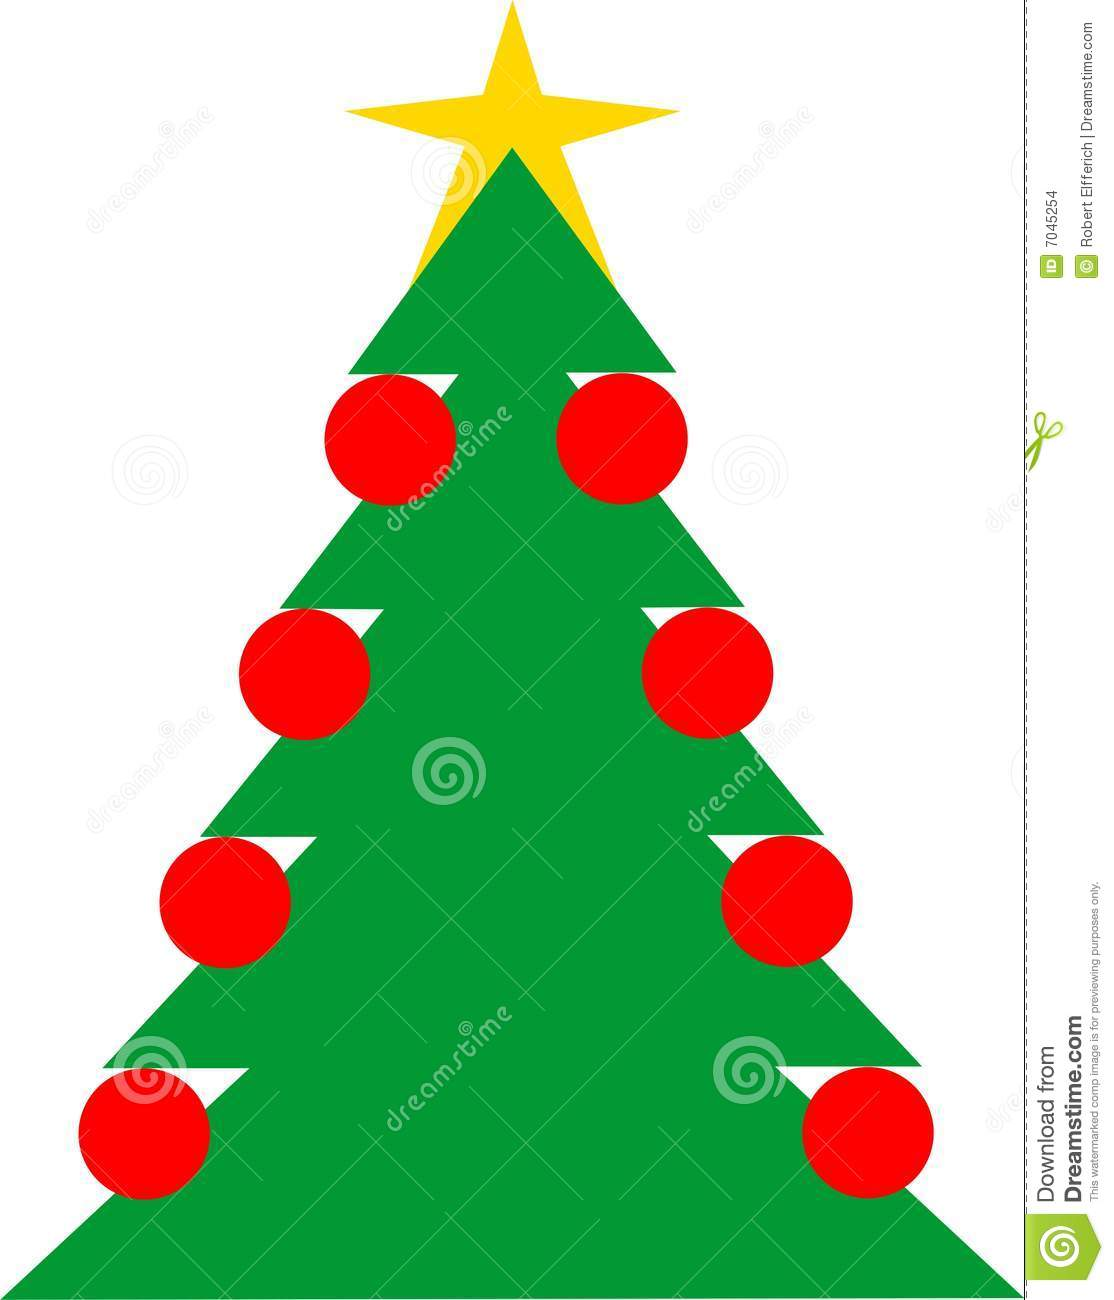 Christmas tree stock images image 7045254 for Red and yellow christmas tree